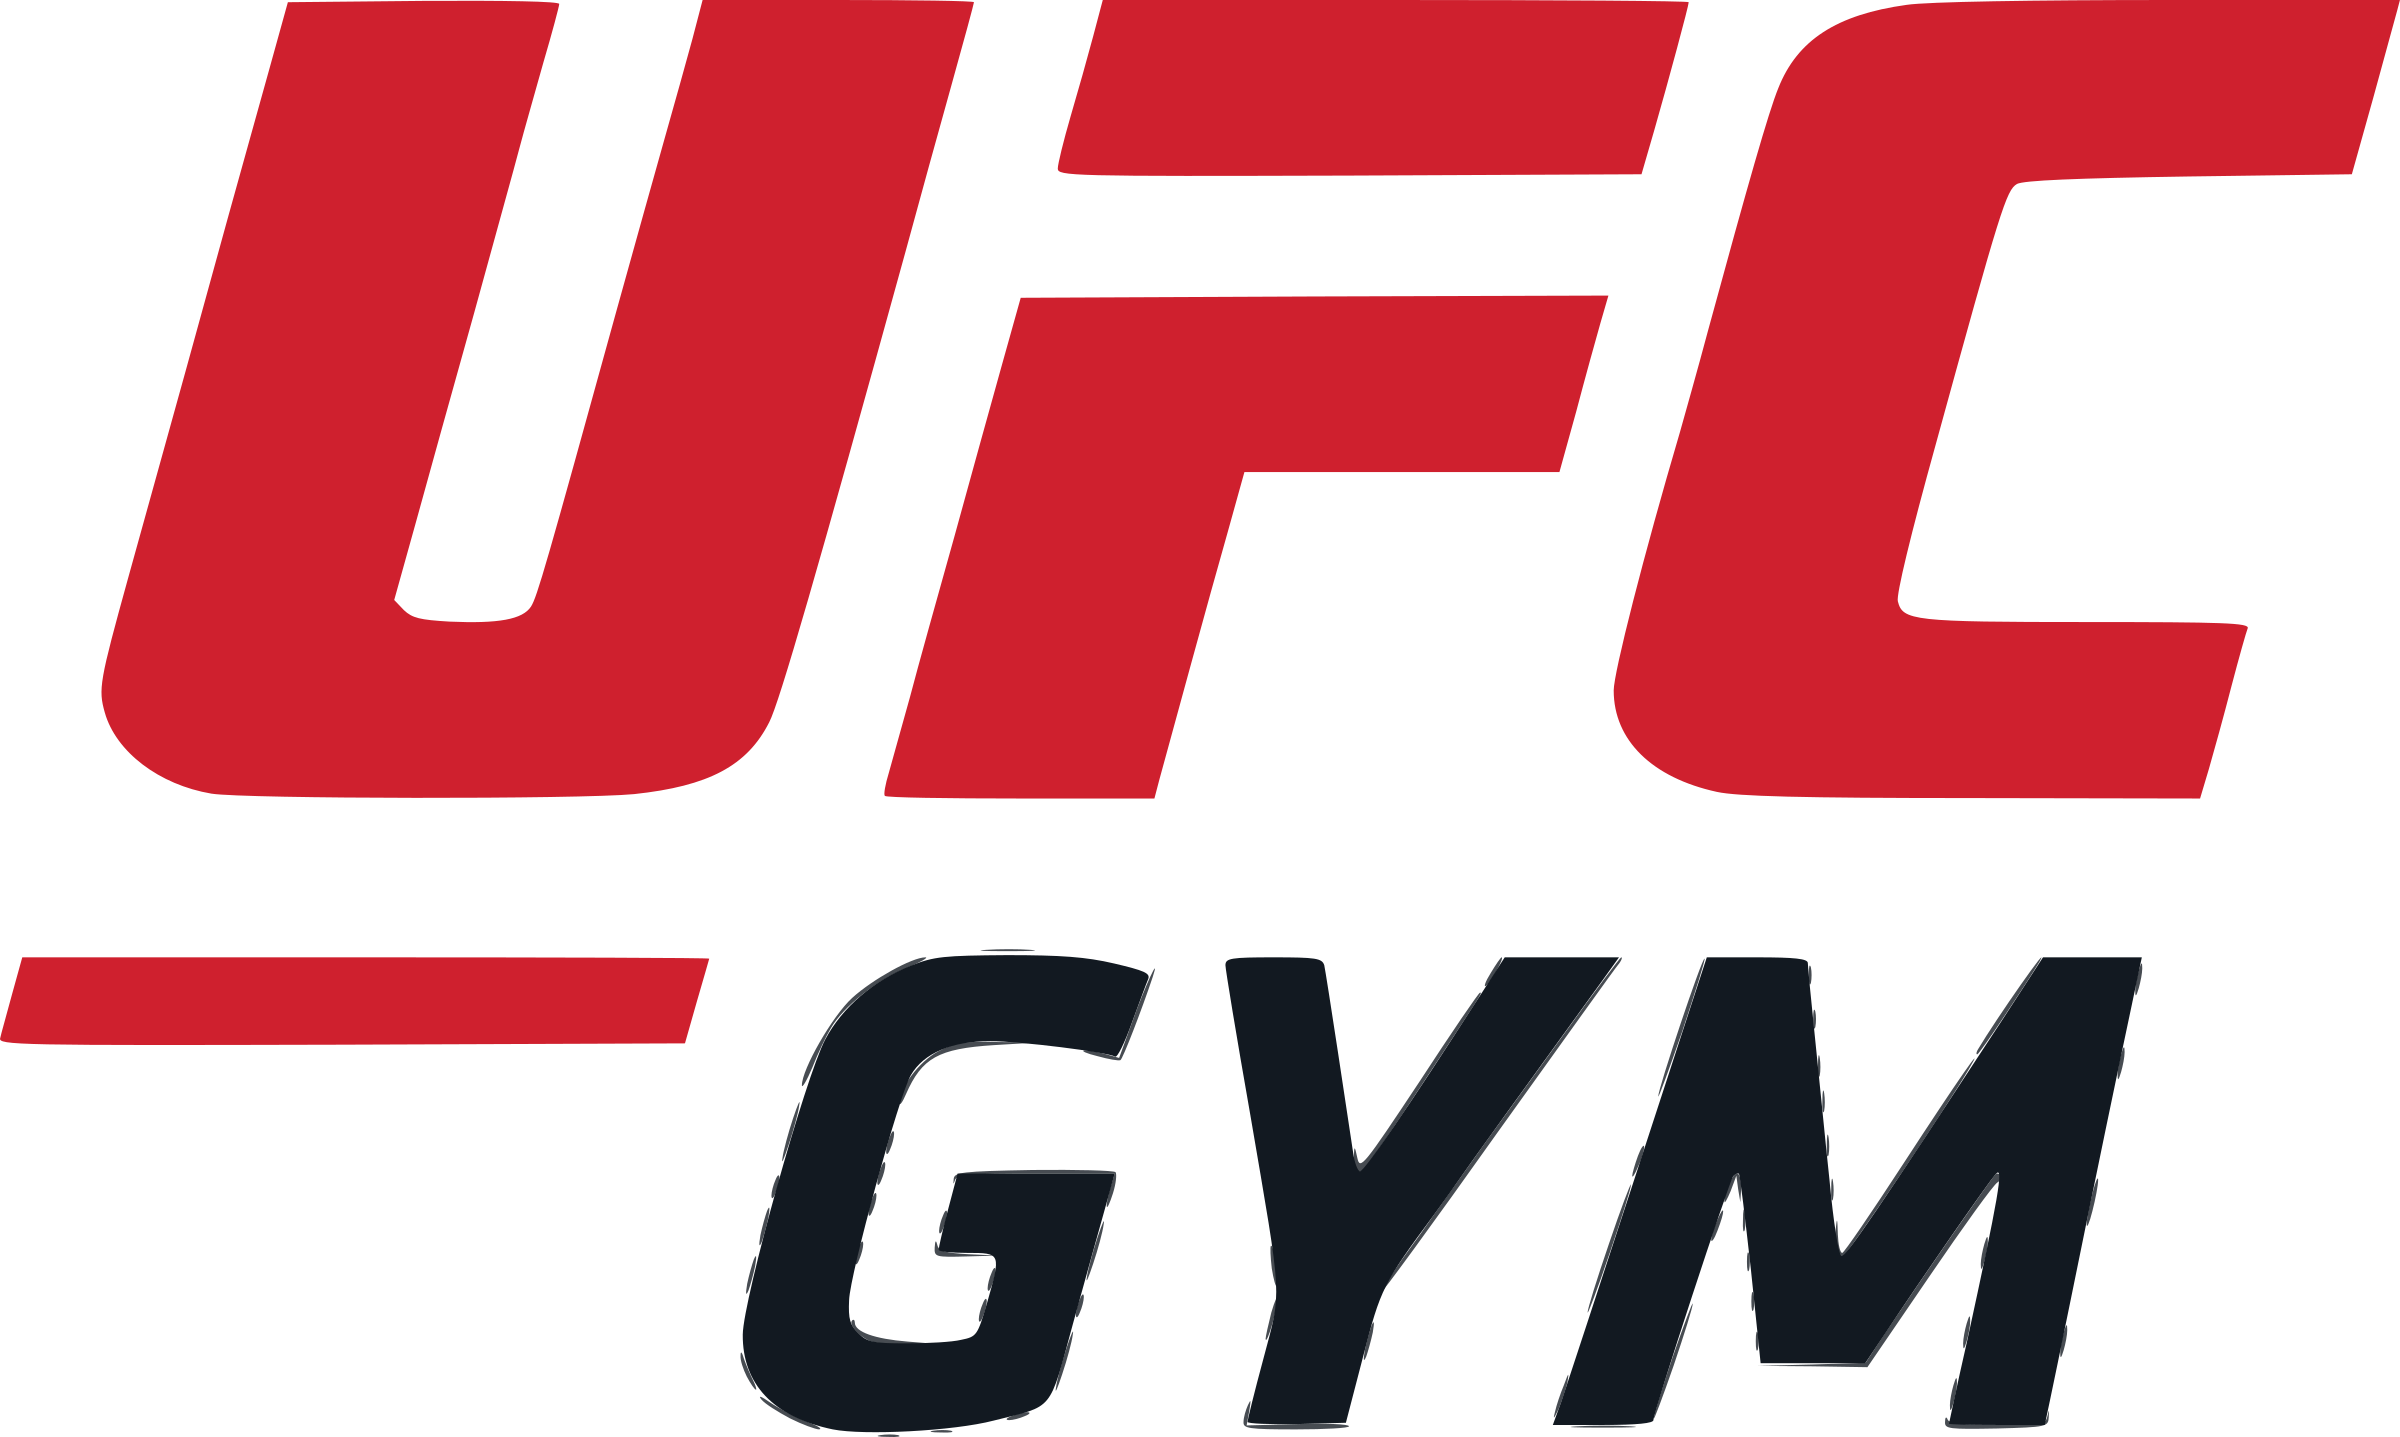 ufc gym 1 logo png transparent svg vector freebie supply rh freebiesupply com ufc logo image ufc logo image